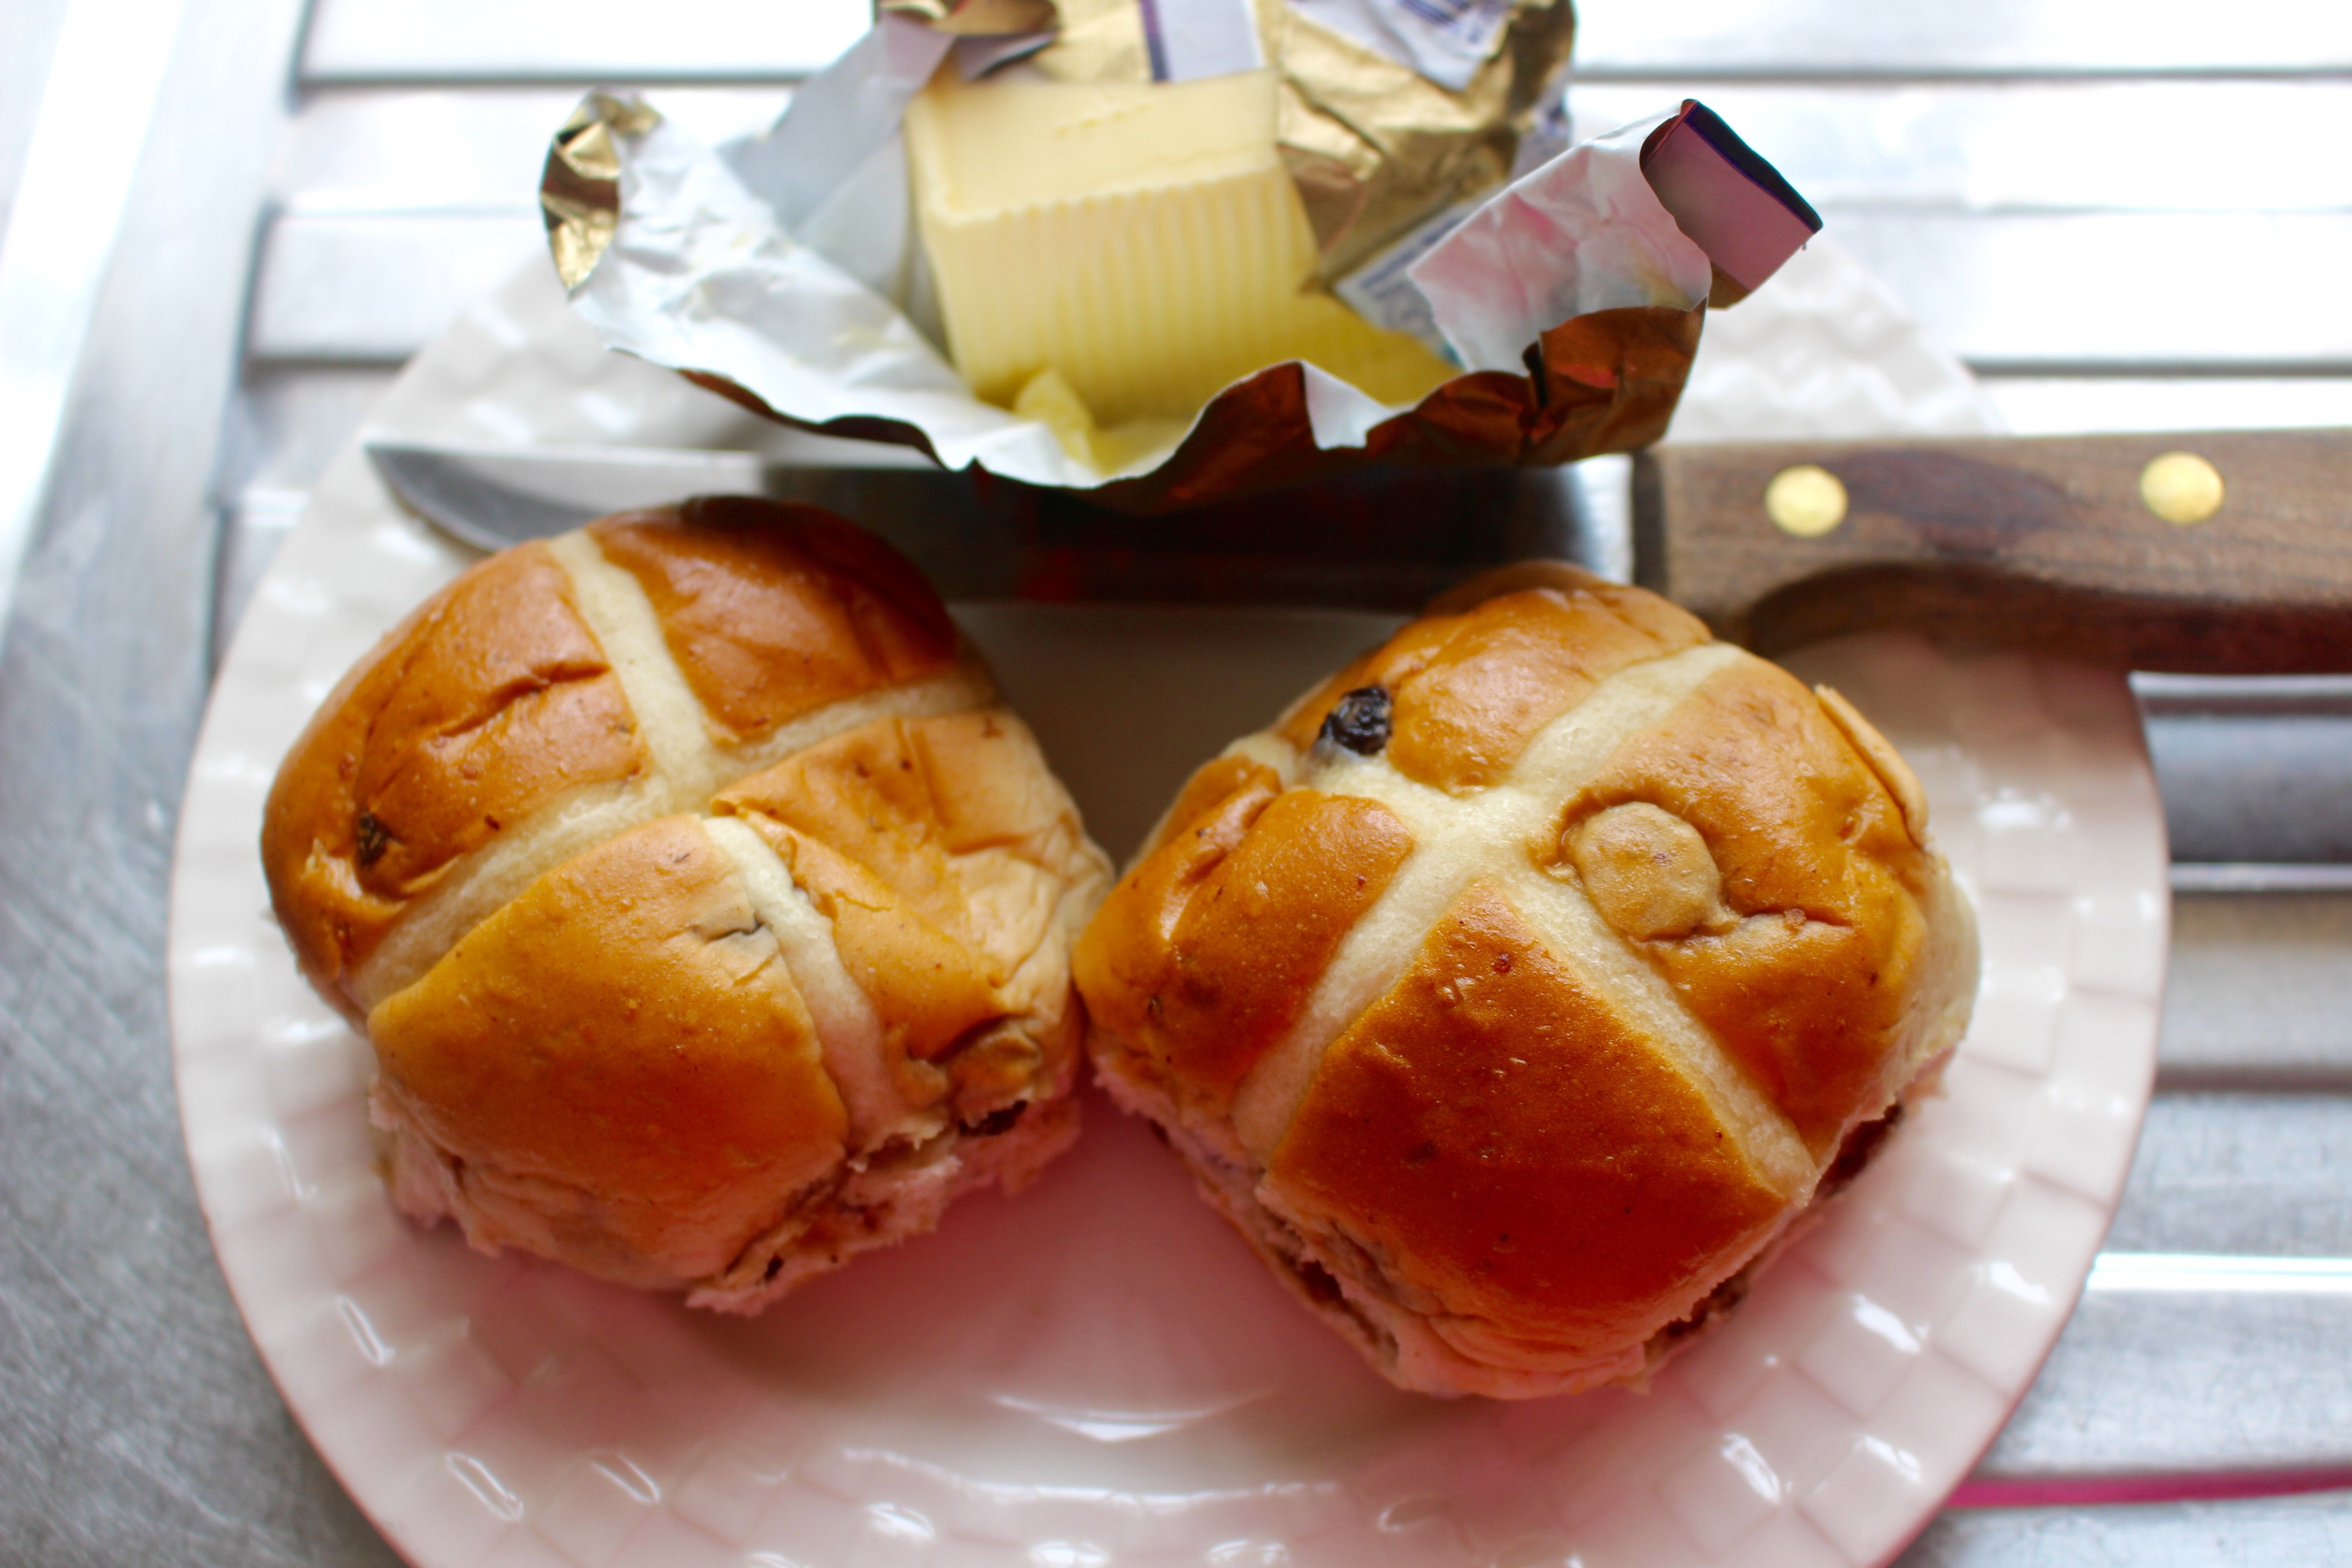 High Angle View Of Hot Cross Buns In Plate On Table